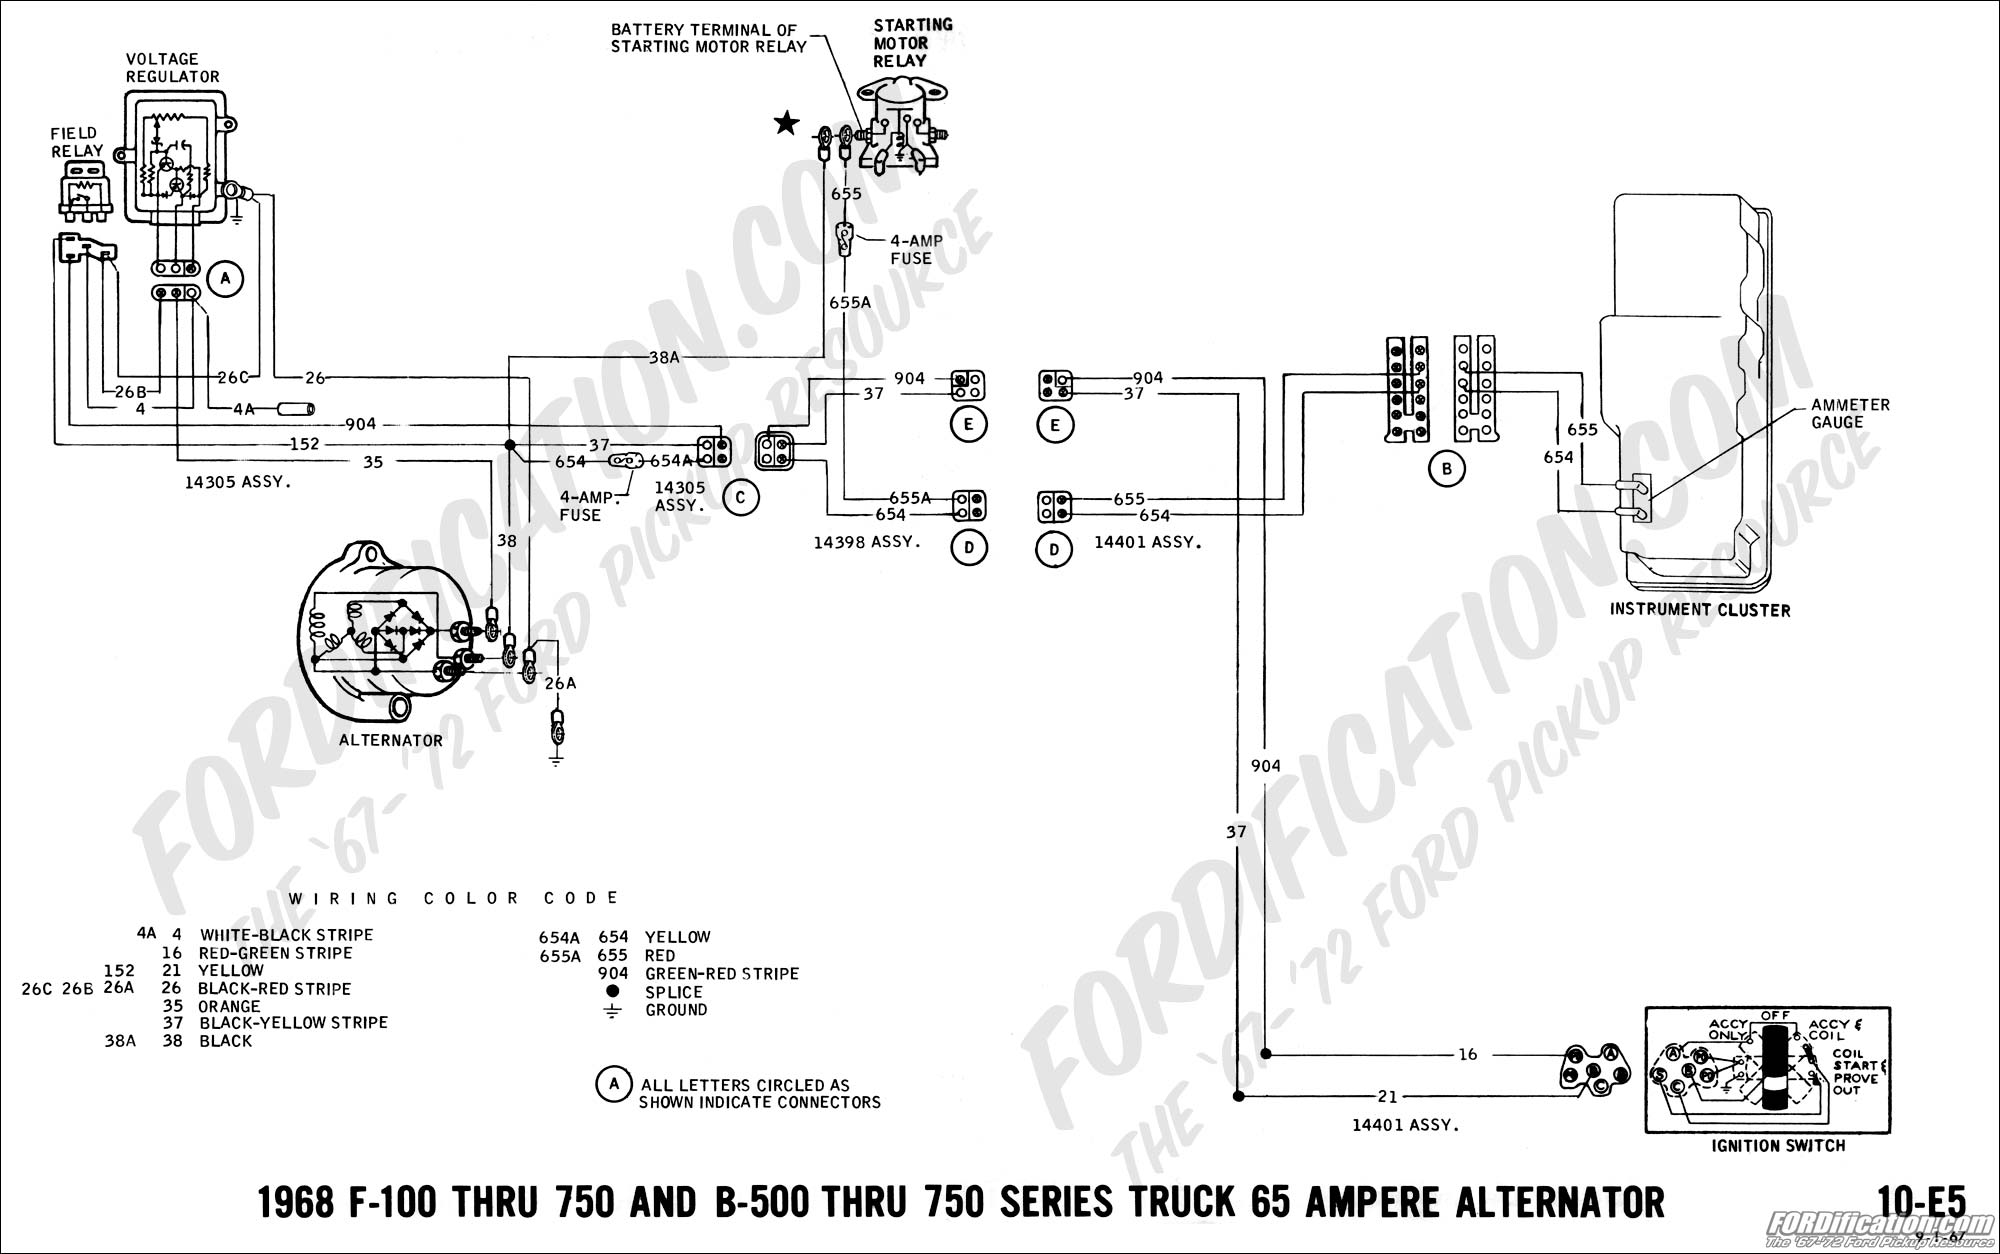 68 07 ford truck technical drawings and schematics section h wiring 1994 ford f150 ignition switch wiring diagram at n-0.co